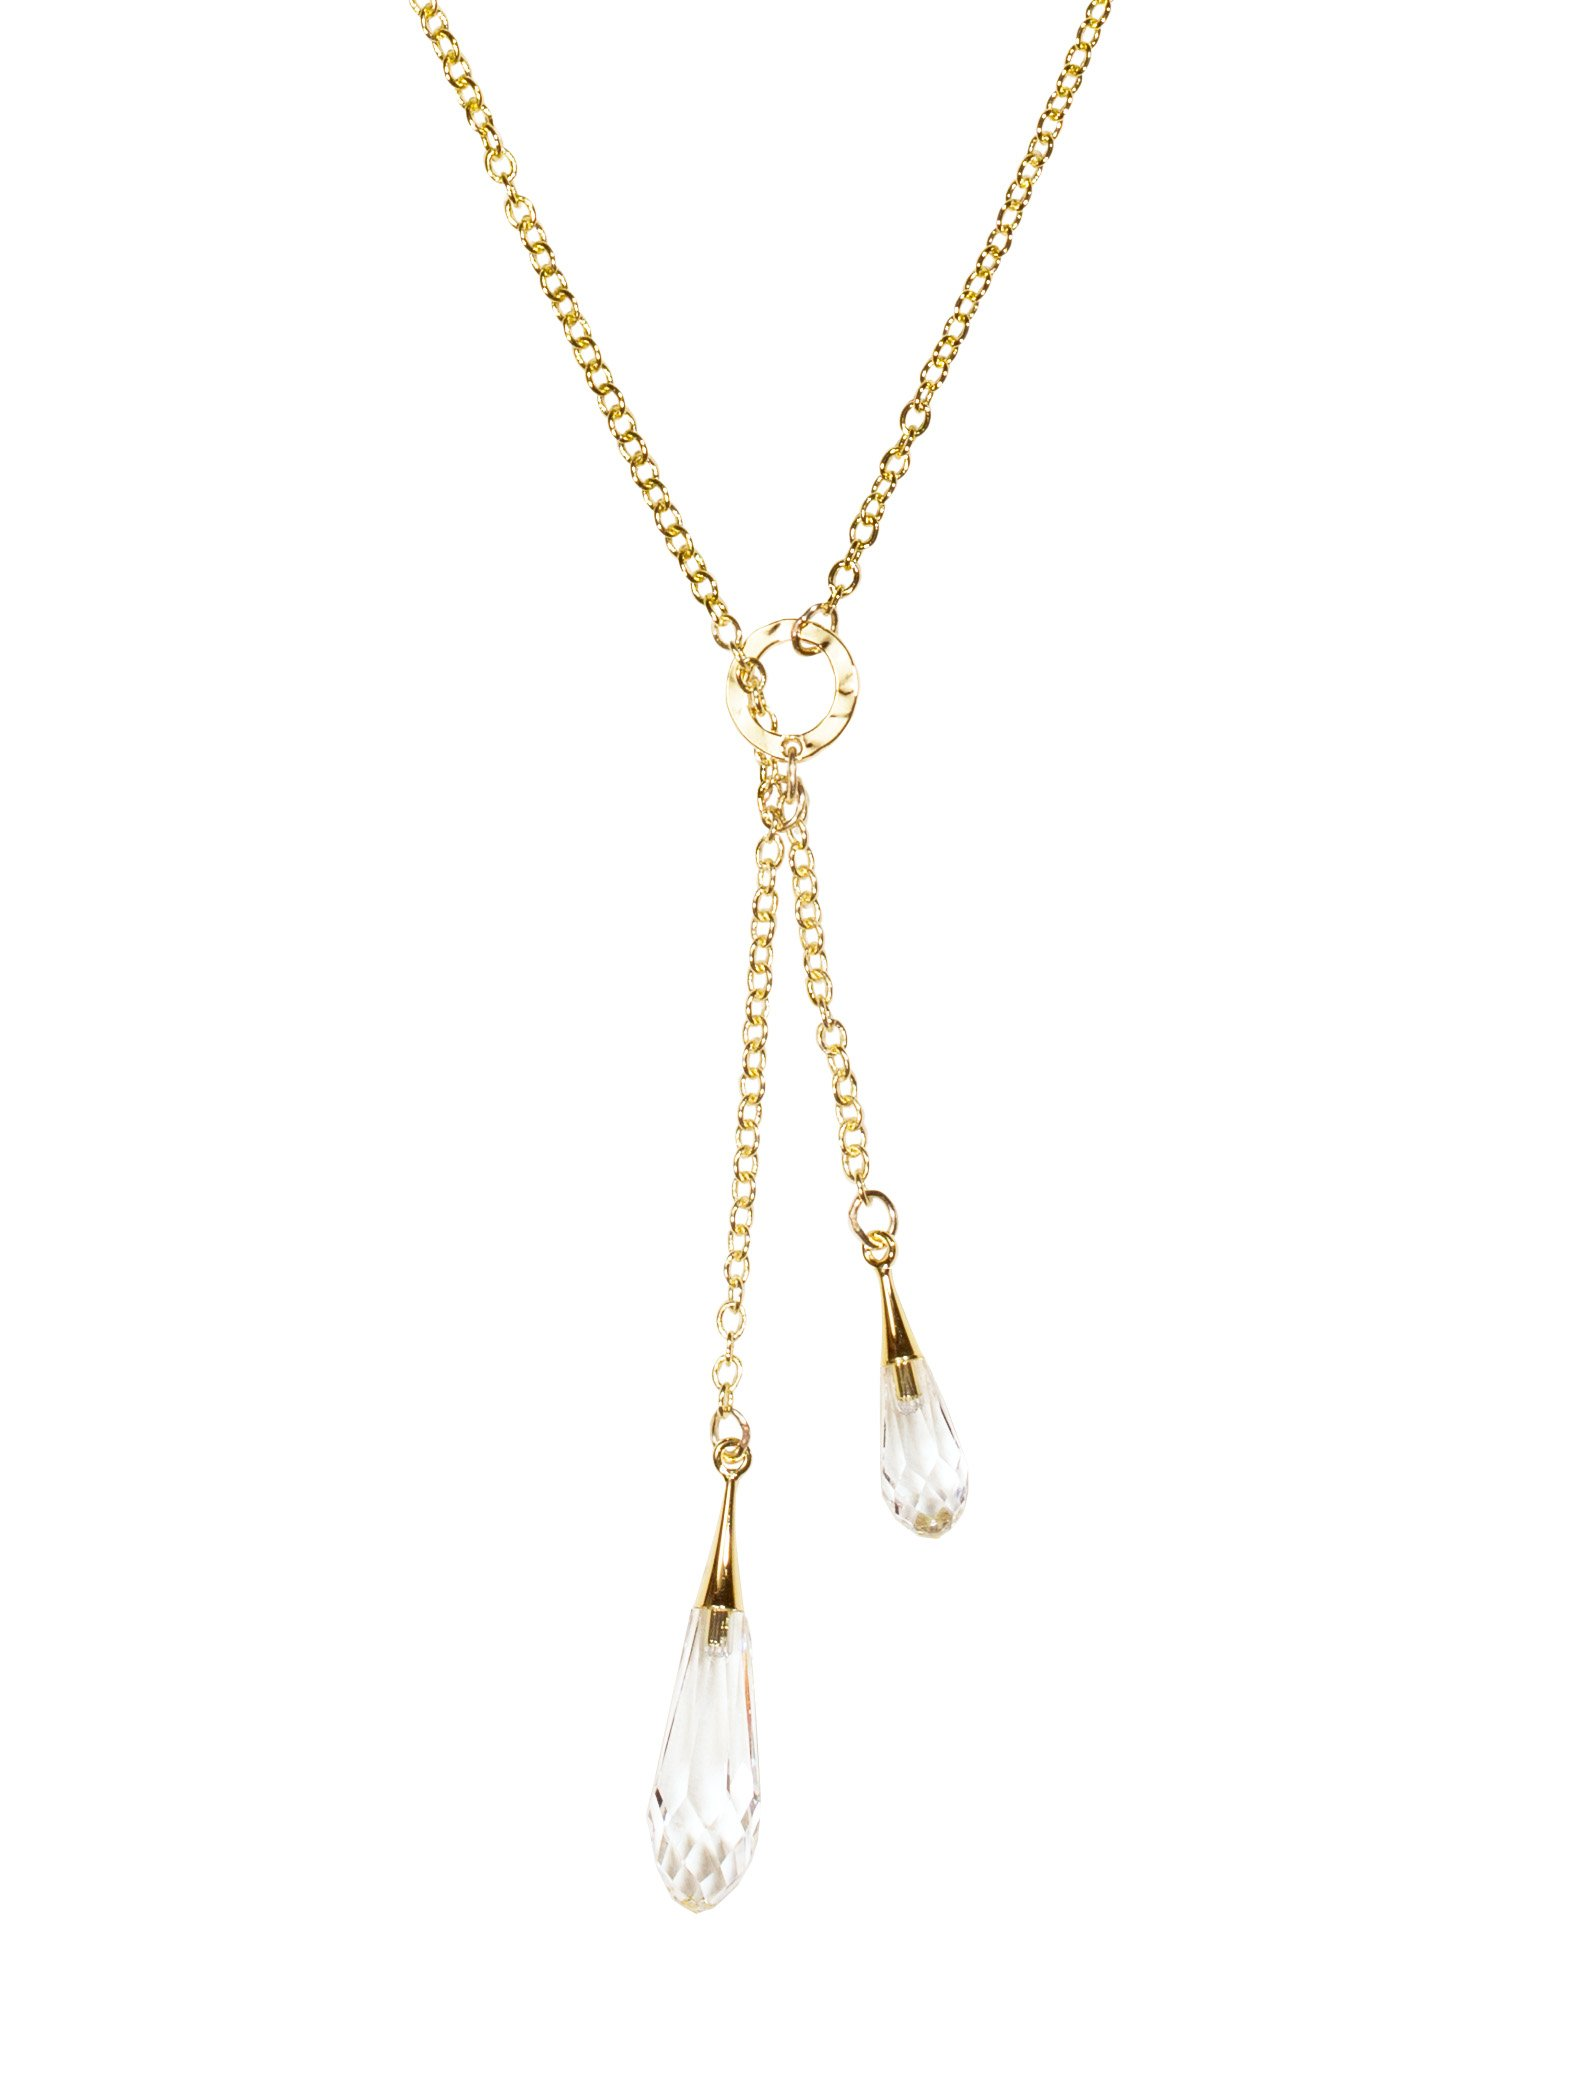 Holly Yashi Rain Drop Larait Necklace, Hypoallergenic Jewelry, Made in California (Clear/Gold)